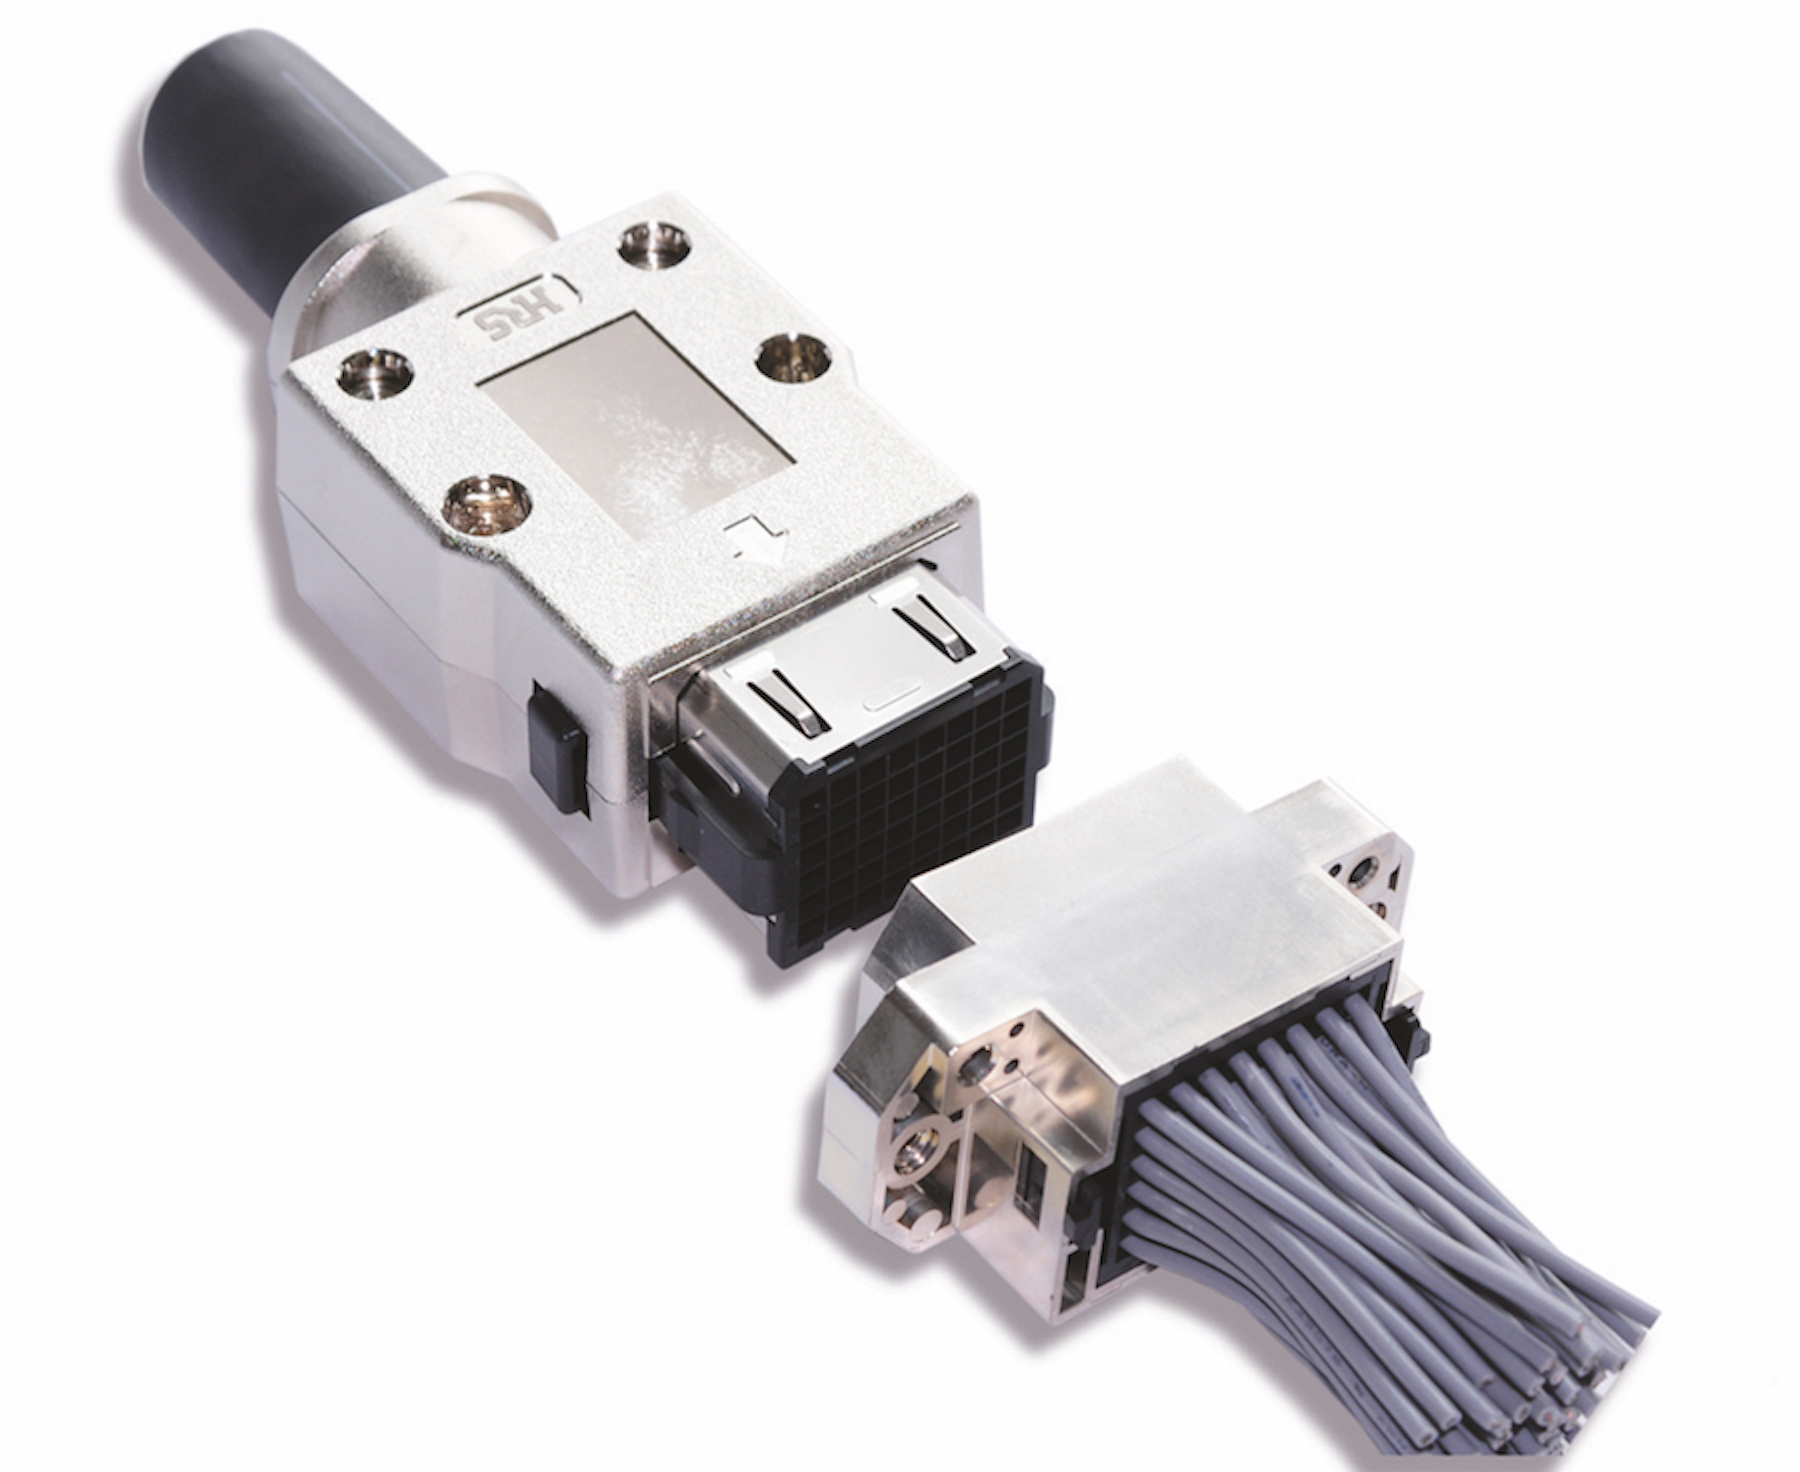 Rugged High-Power Connector for Industrial Environments